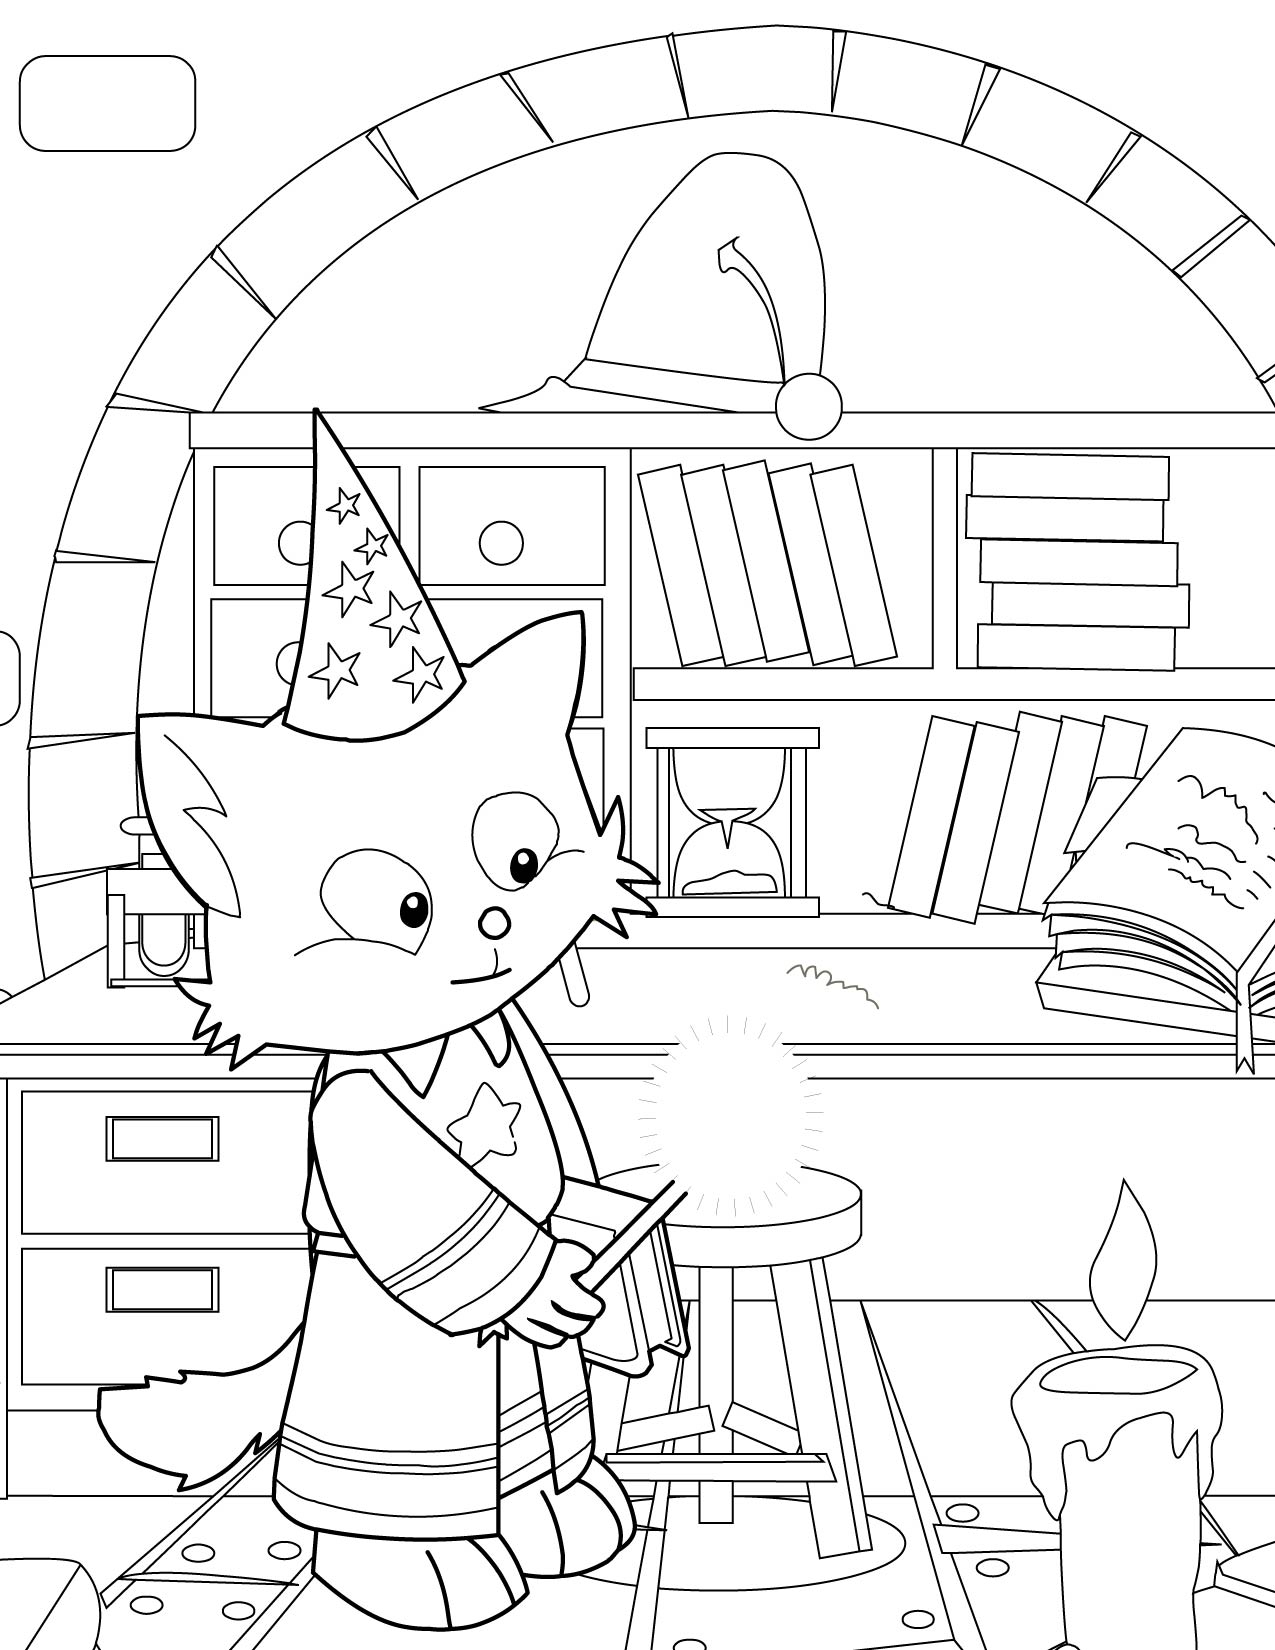 wizard coloring pages wizard coloring pages to download and print for free pages wizard coloring